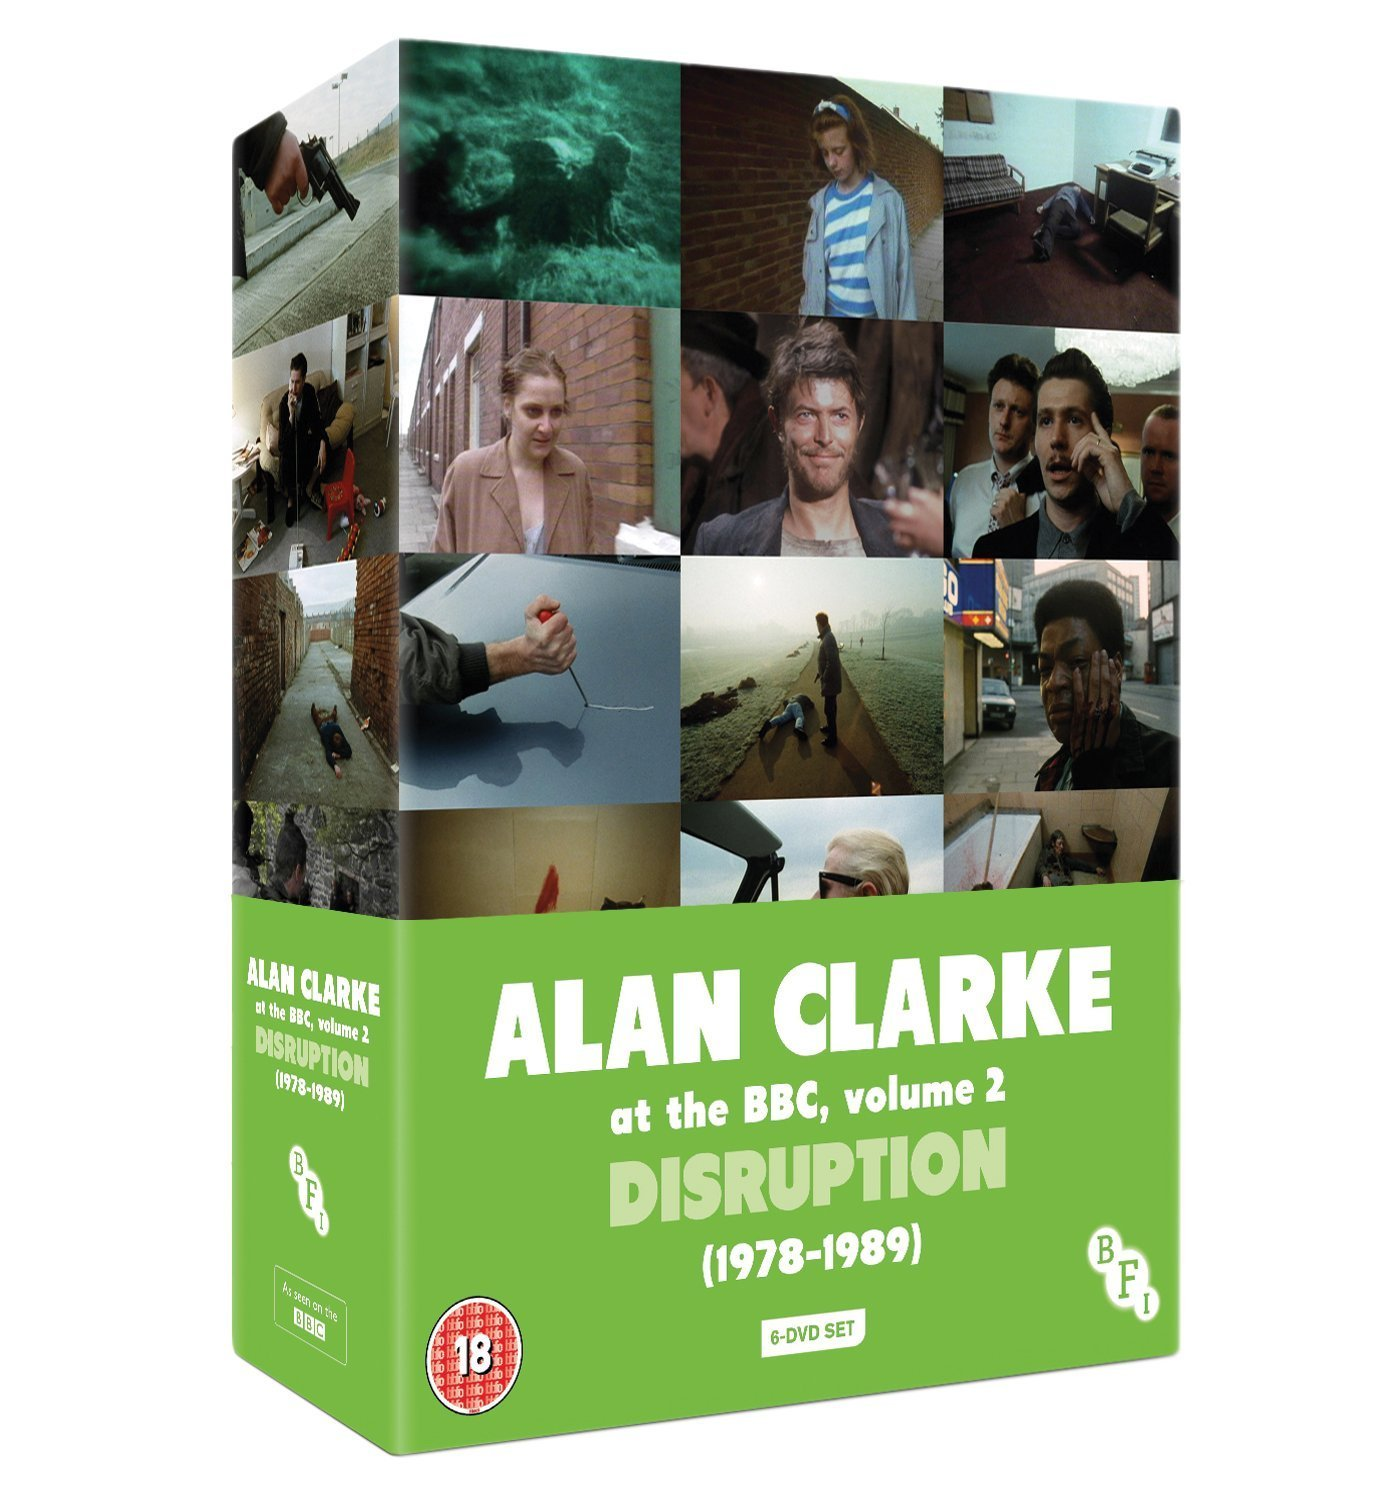 Buy Alan Clarke at the BBC, Volume 2: Disruption (1978-1989) (6-DVD Box Set)